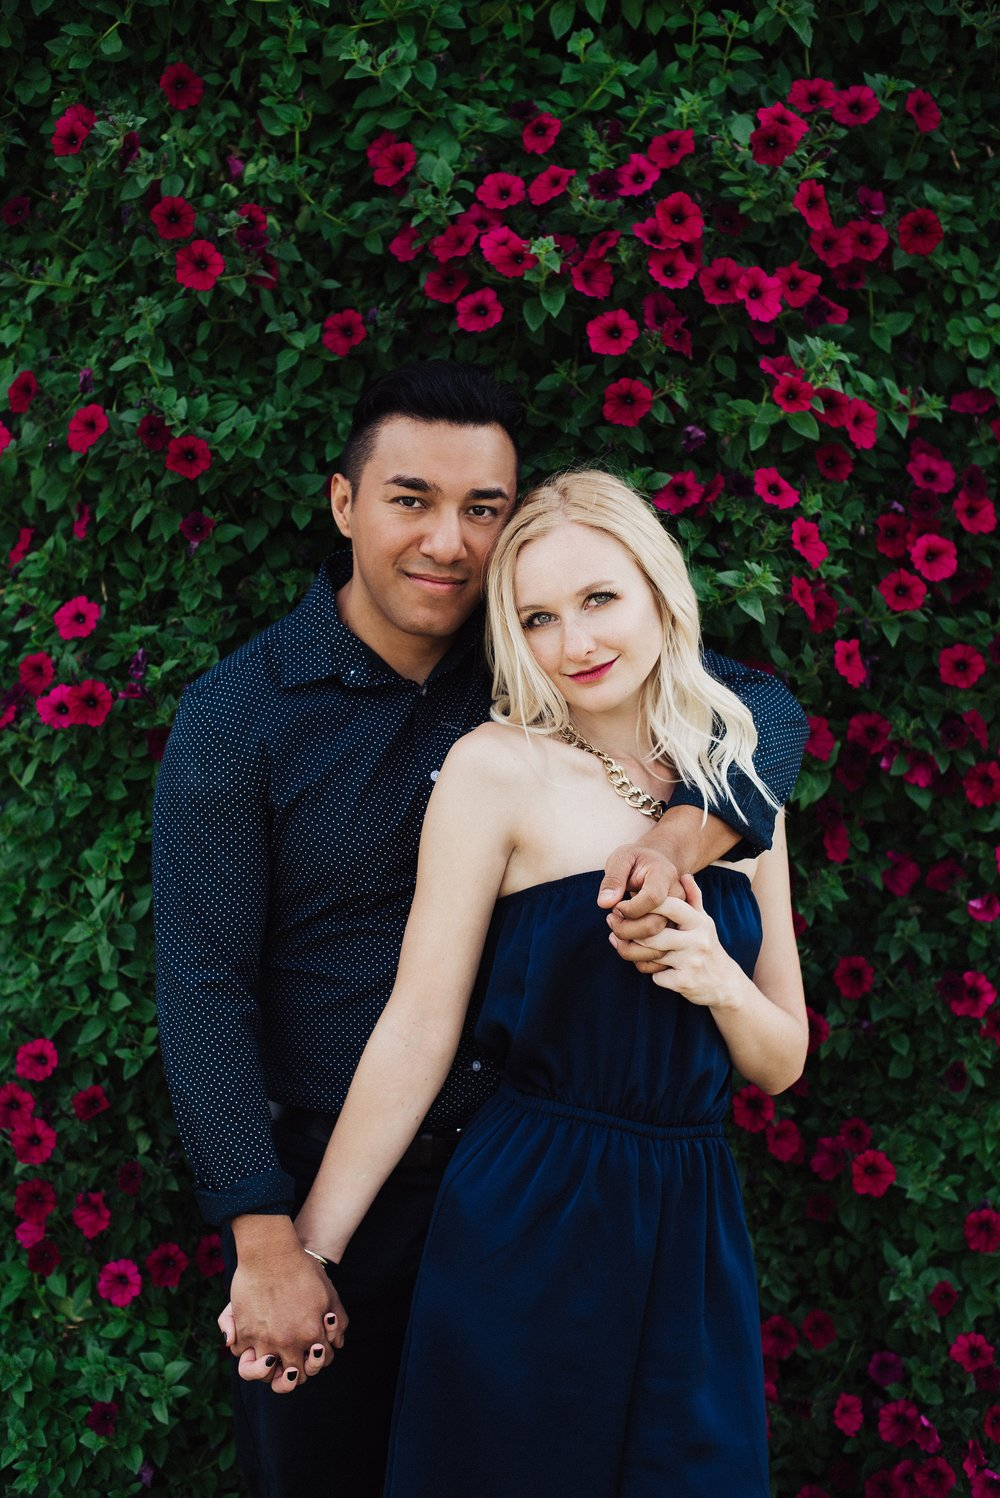 Spring Couples Session at Dallas Botanical Garden